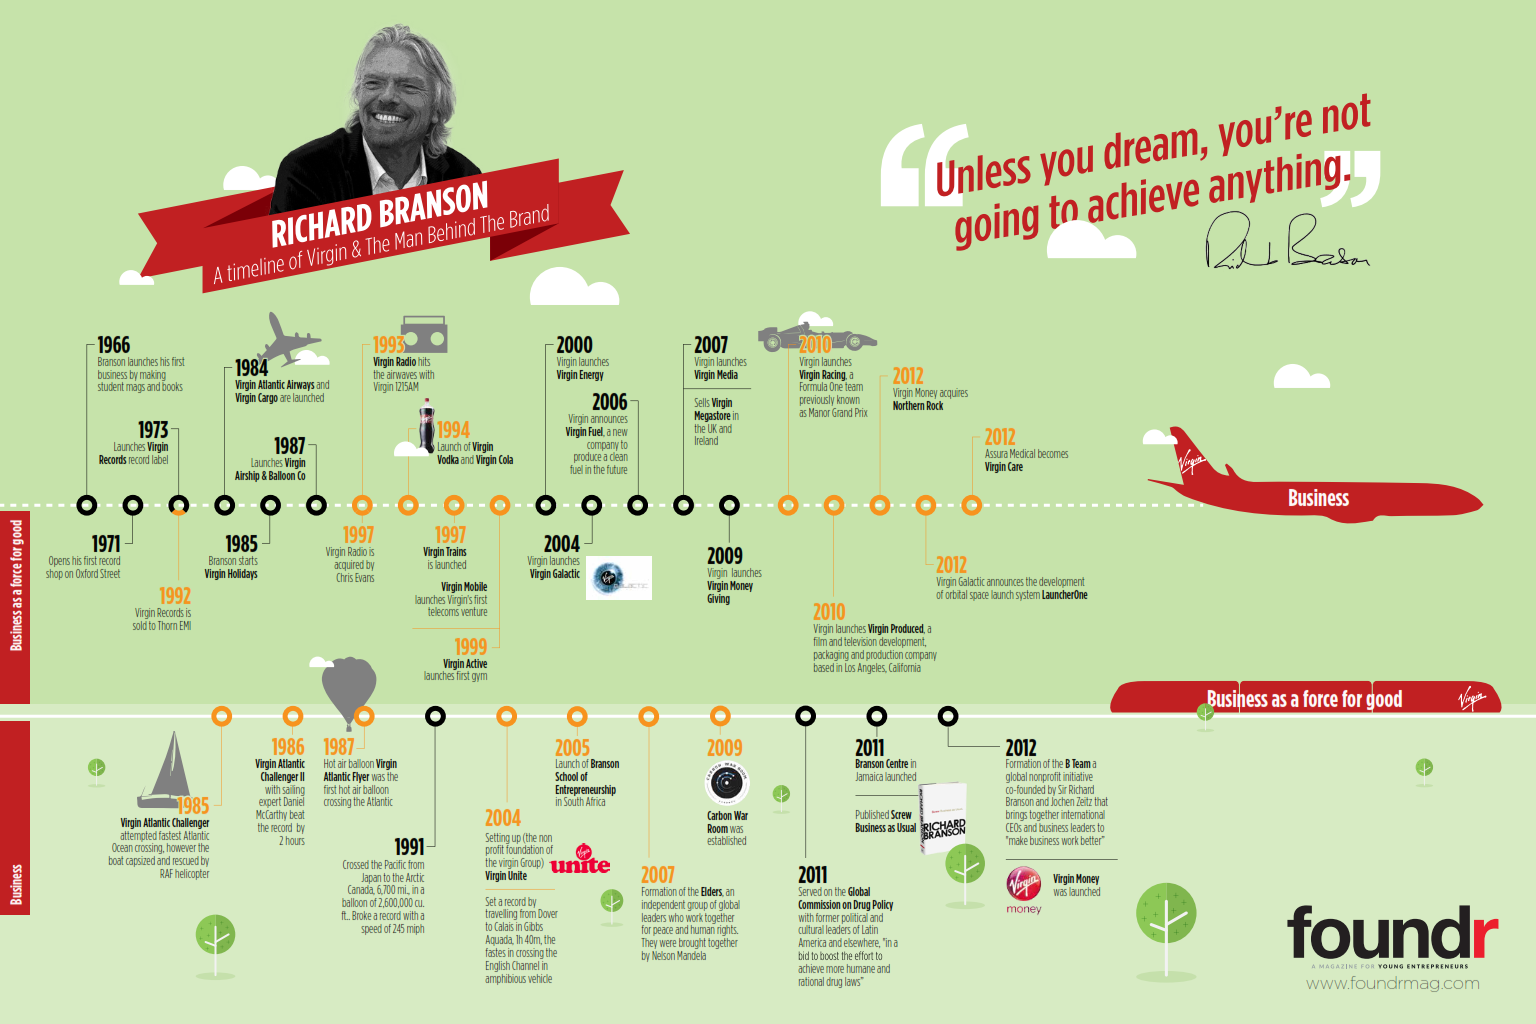 Richard Branson-Virgin Timeline